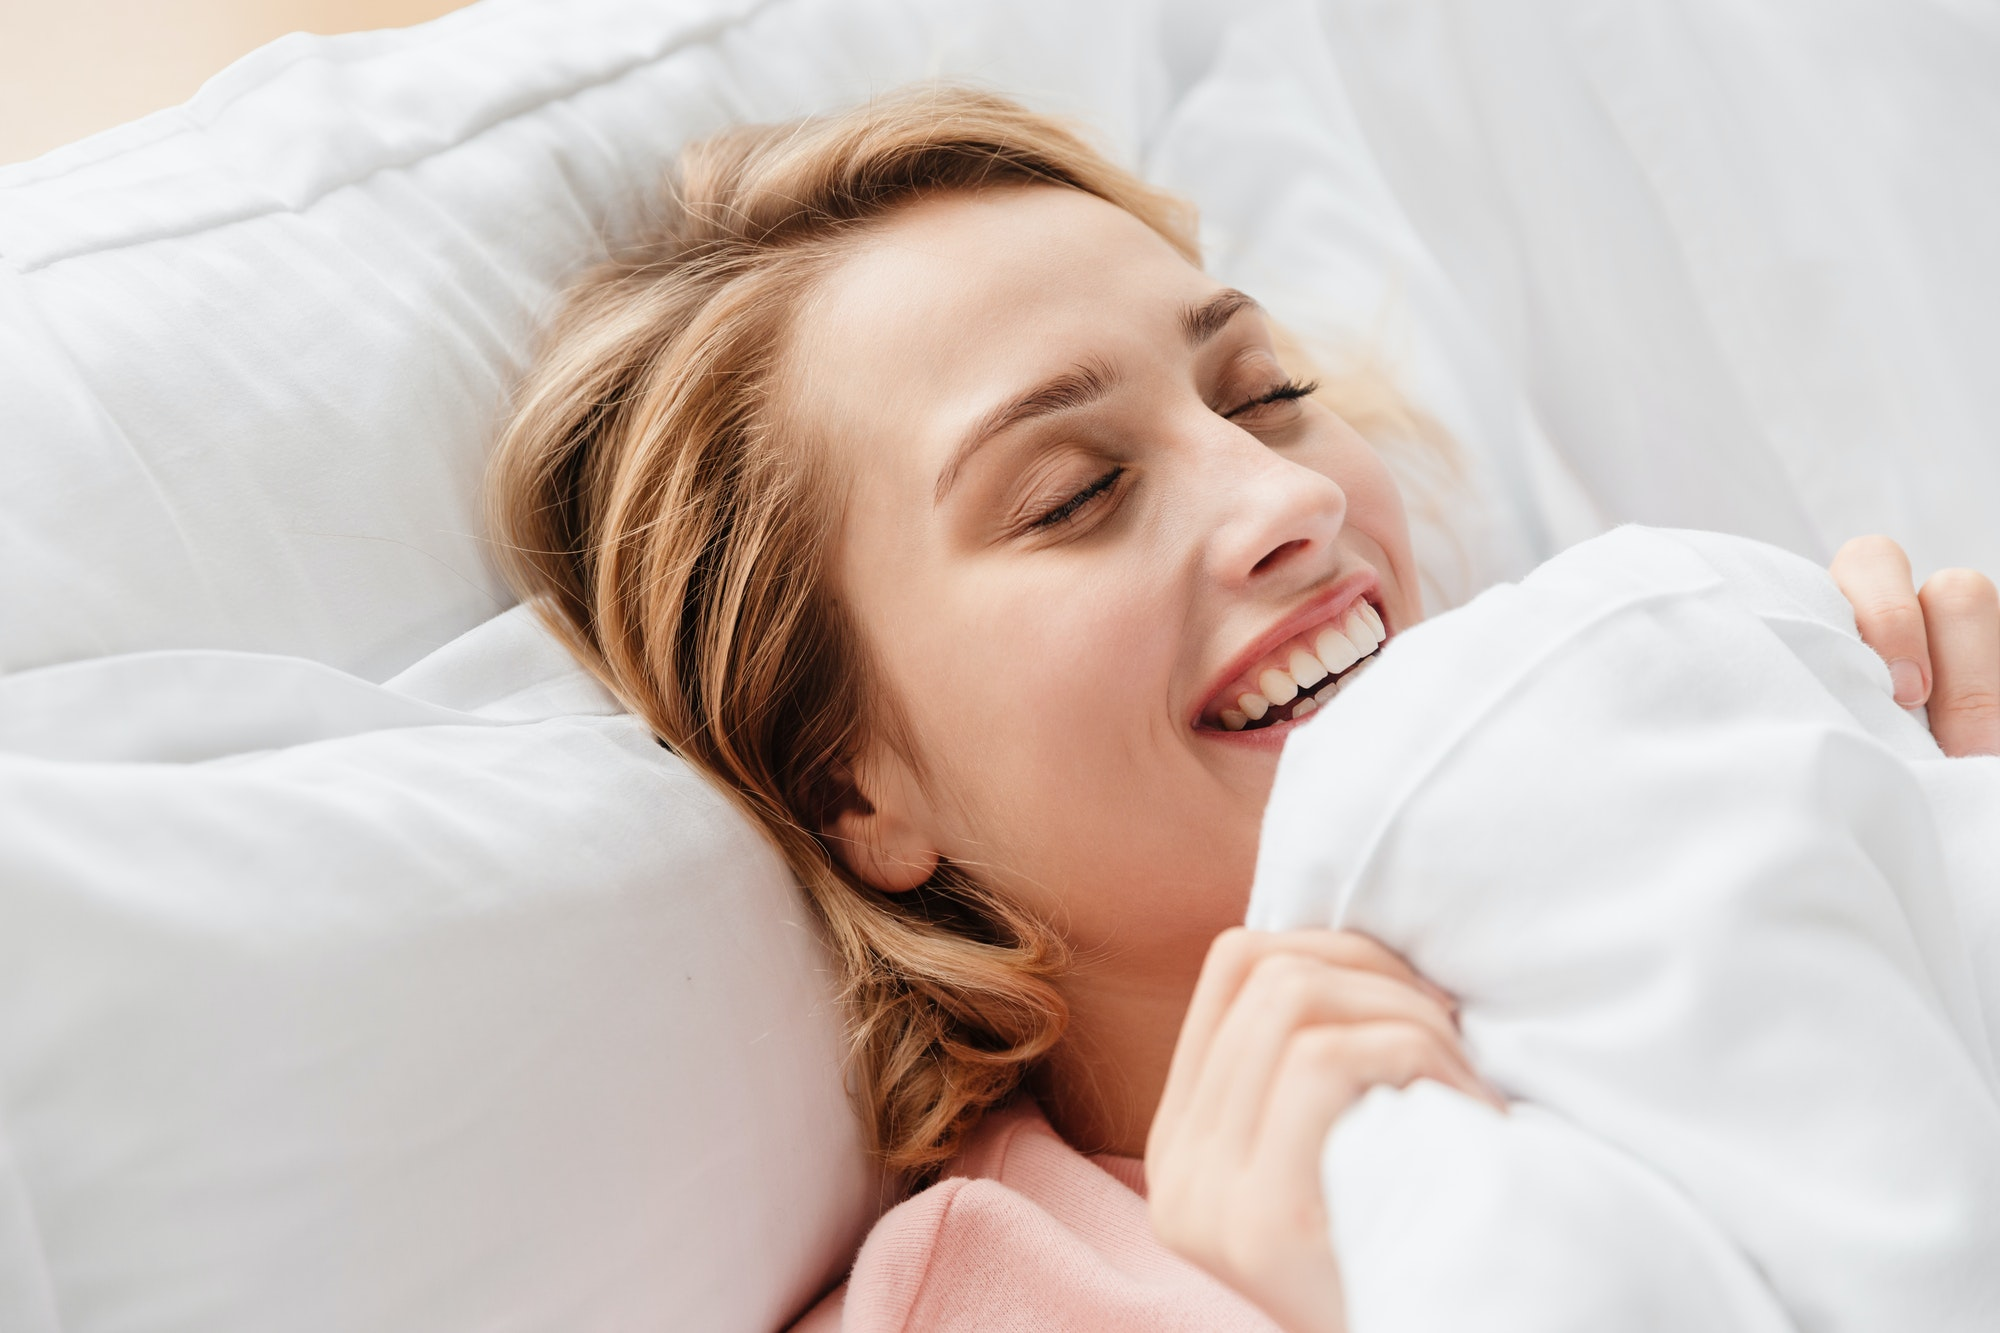 Optimistic young woman at home lies in bed under blanket.